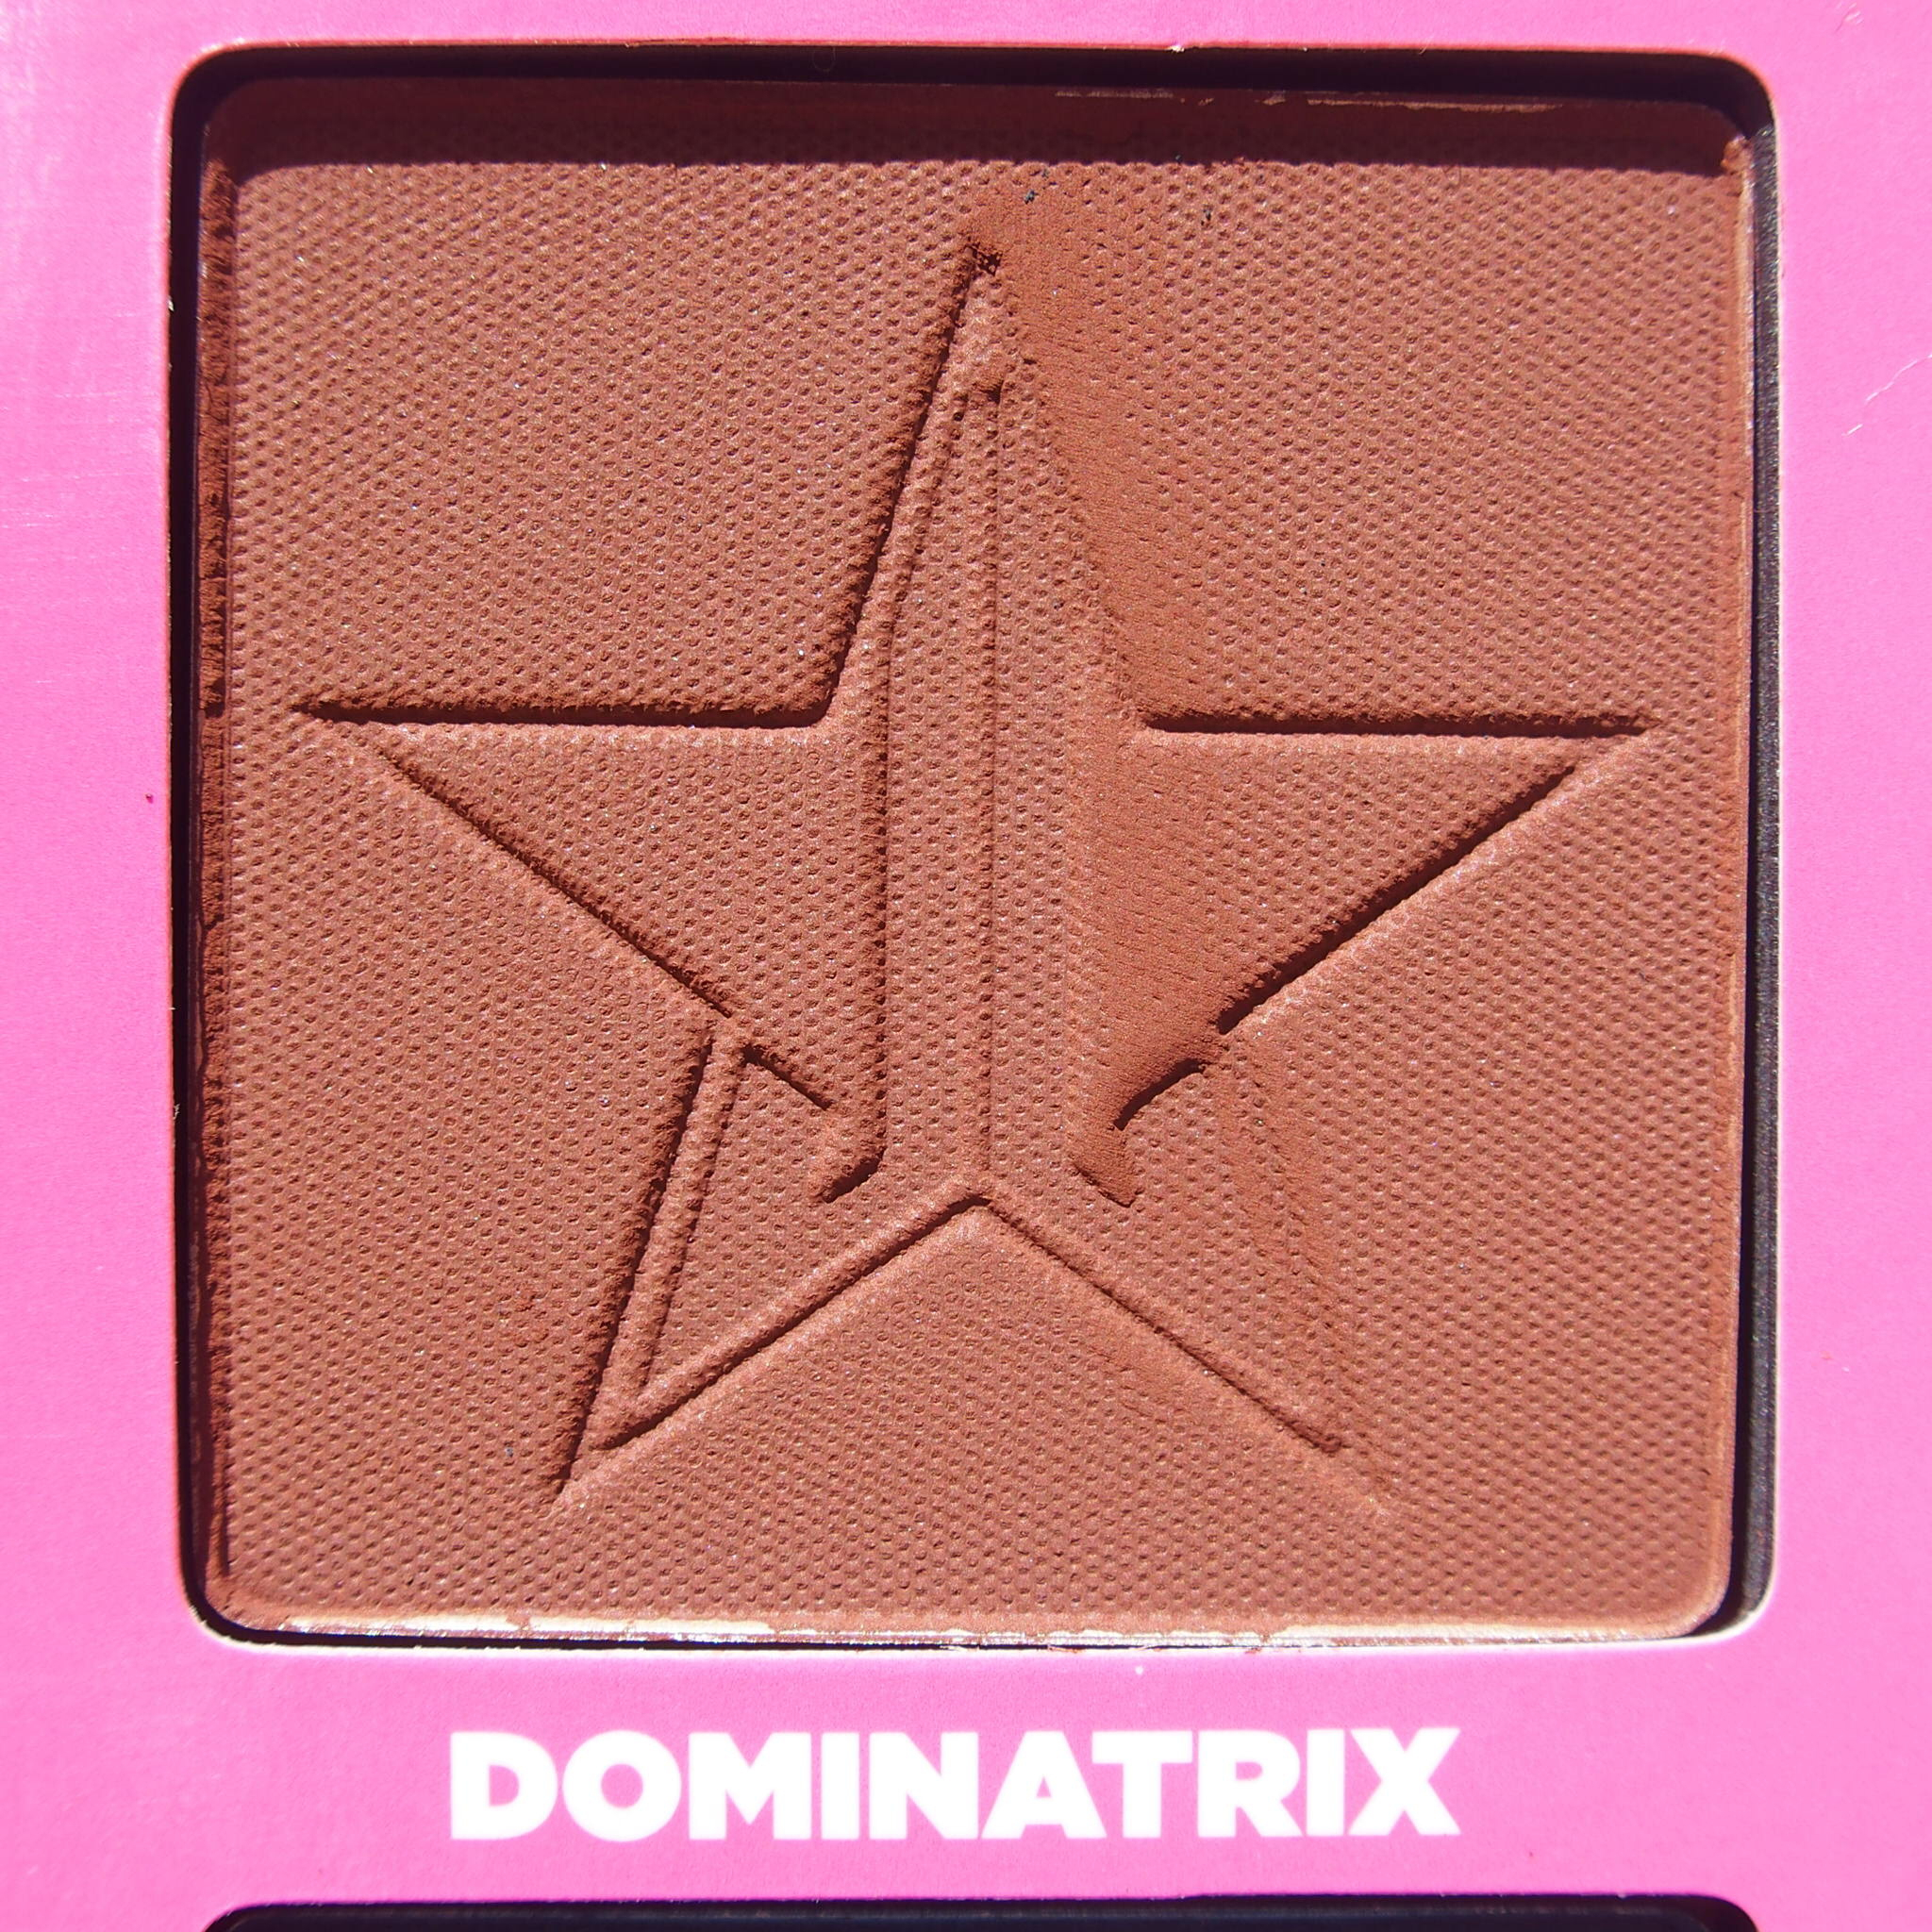 Close up of Dominatrix from the Jeffree Star Androgyny Palette